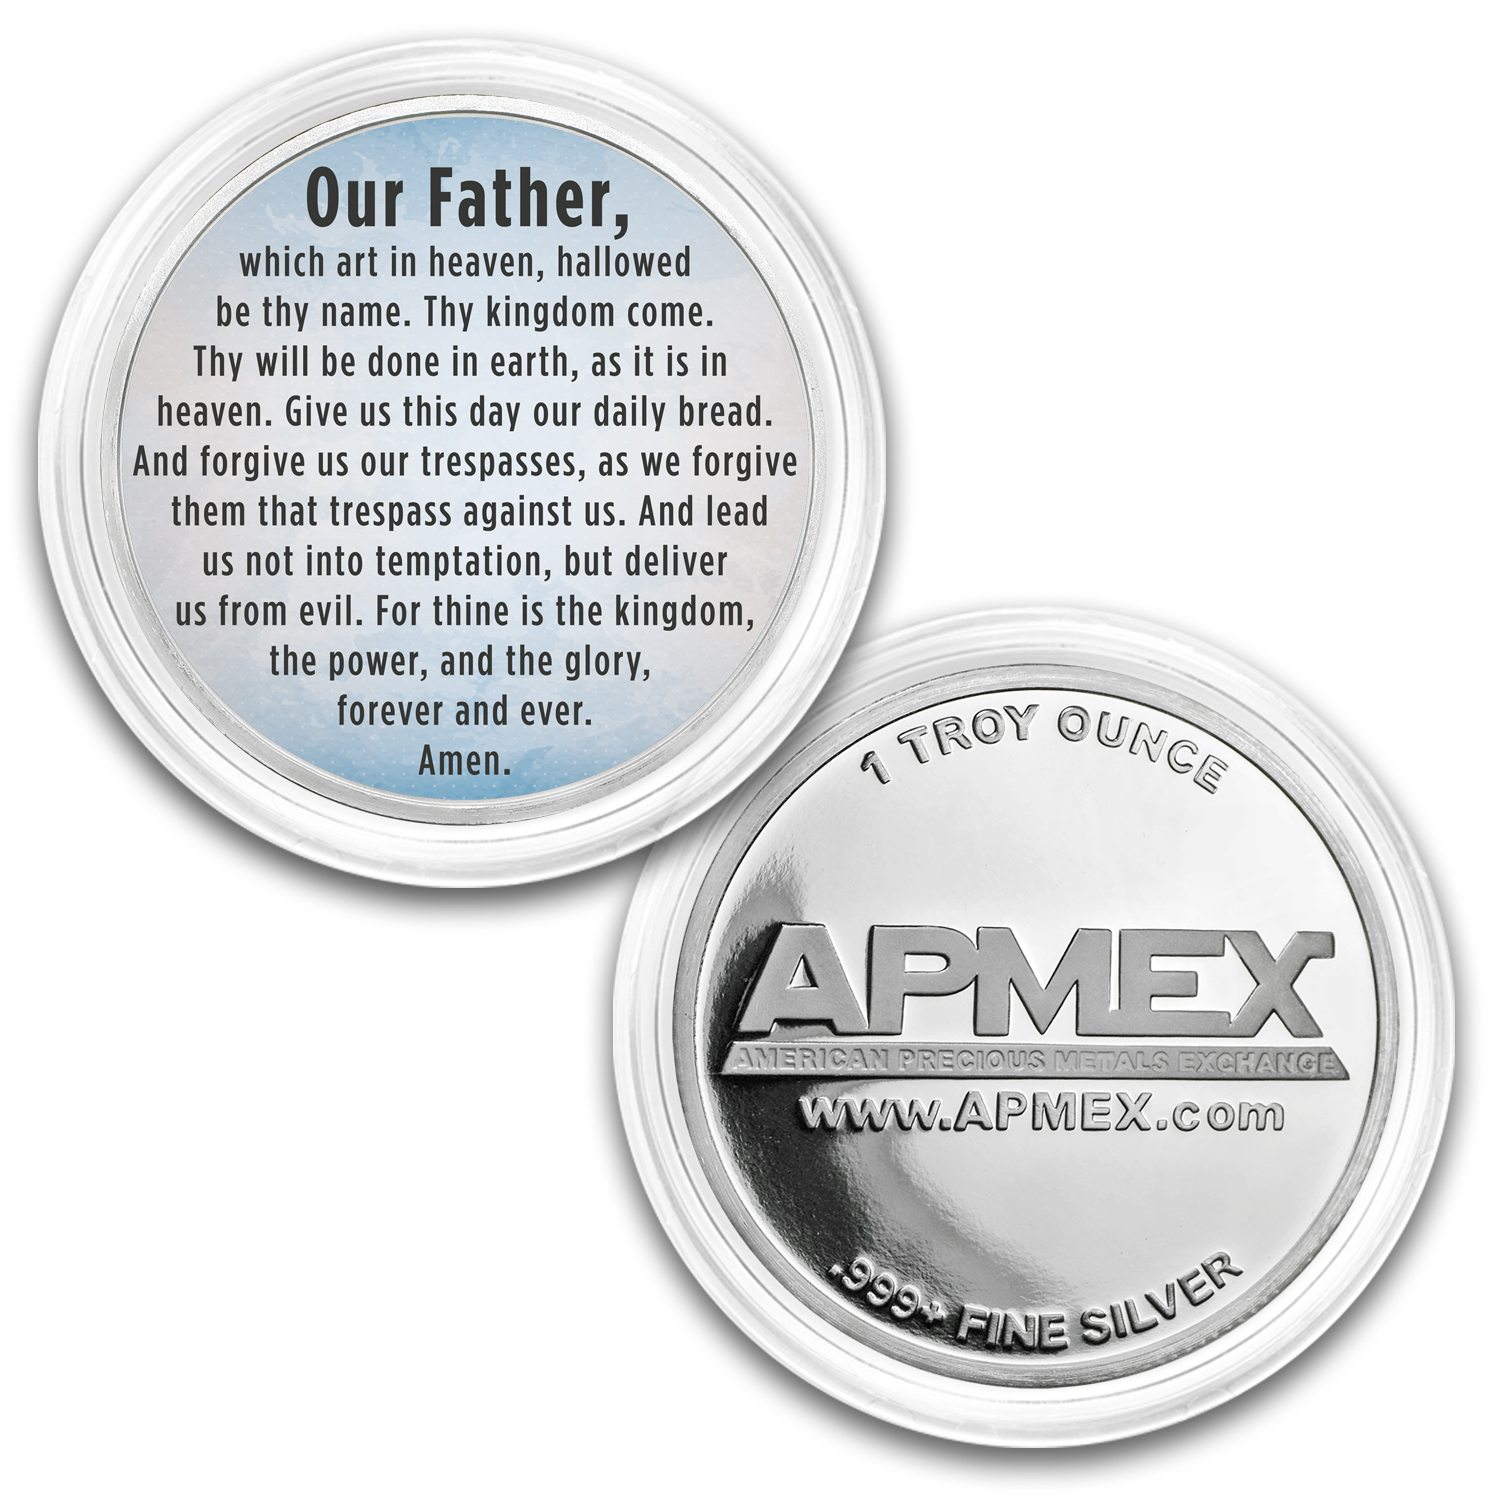 1 oz Silver Colorized Round - APMEX (The Lord's Prayer, Sky Blue)